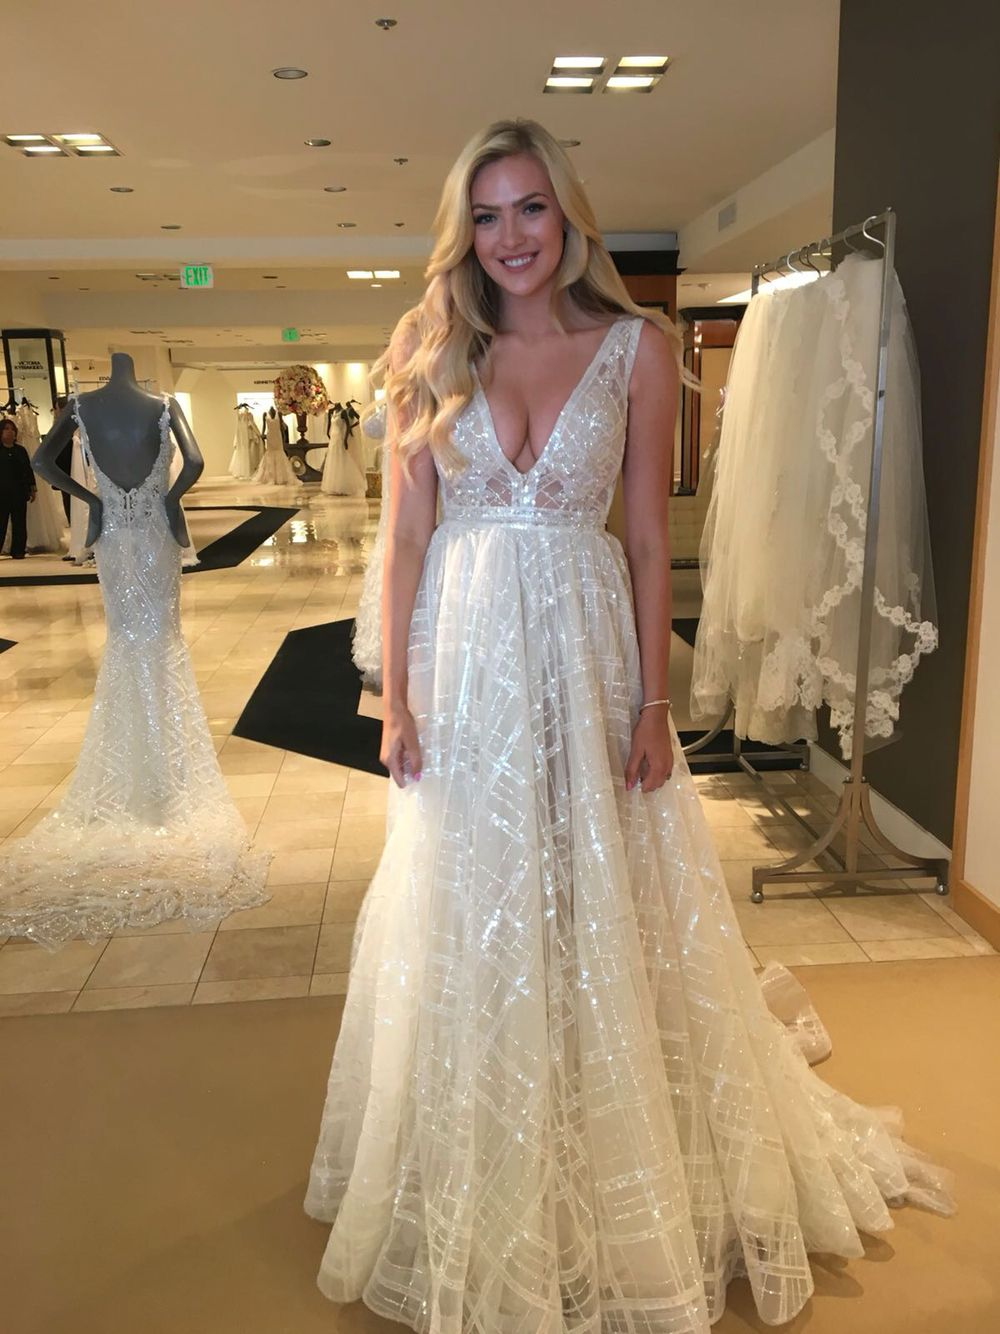 stunning new #berta bride ❤ from our trunk show at @saks beverly